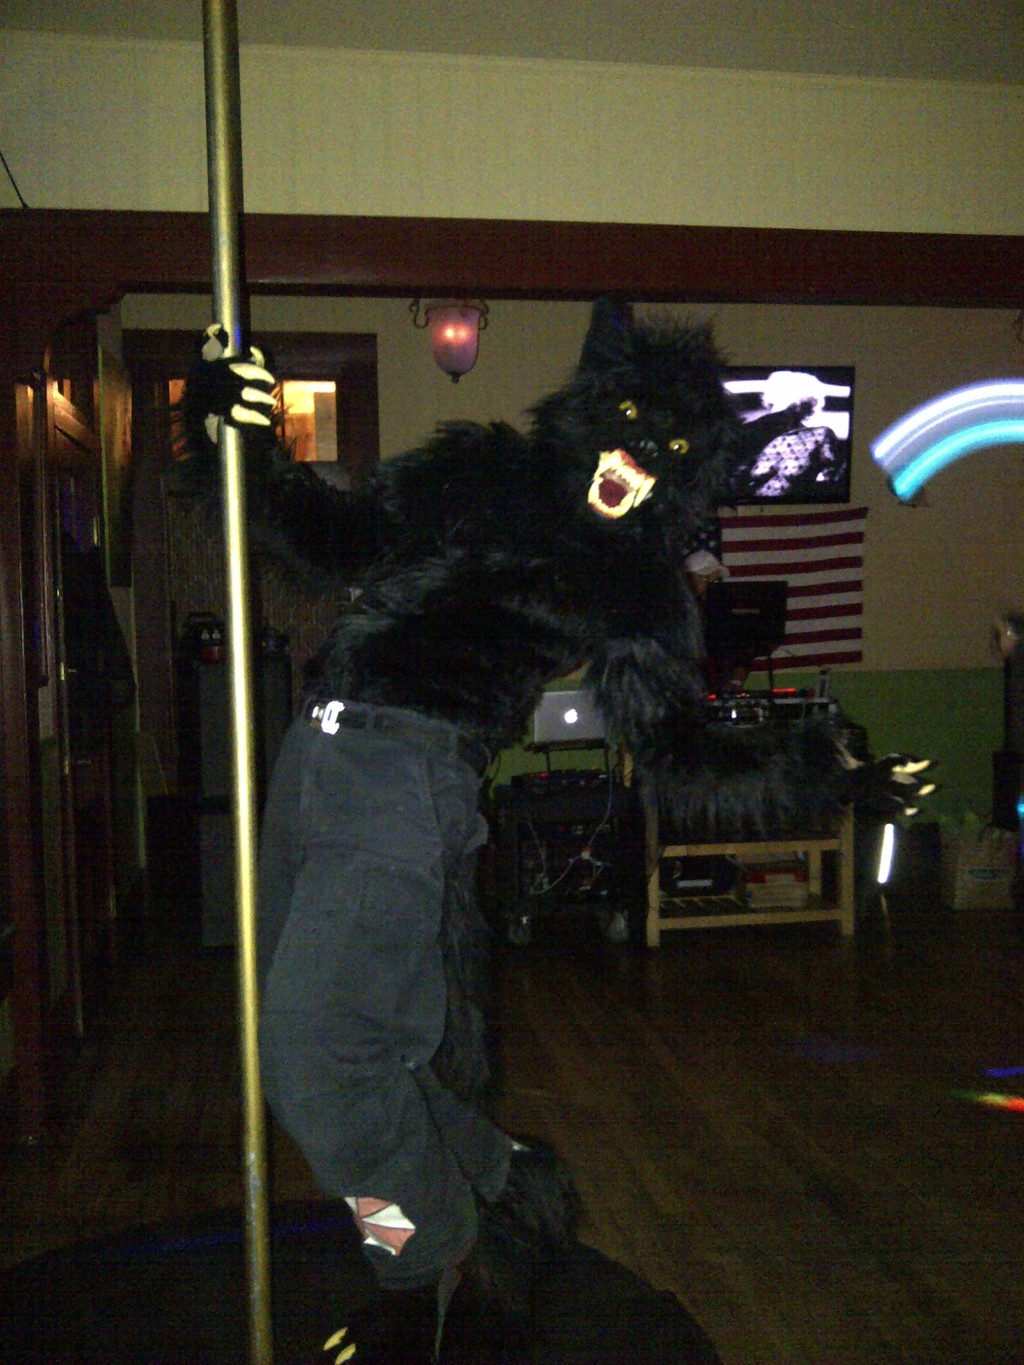 Werewolf...strippers?